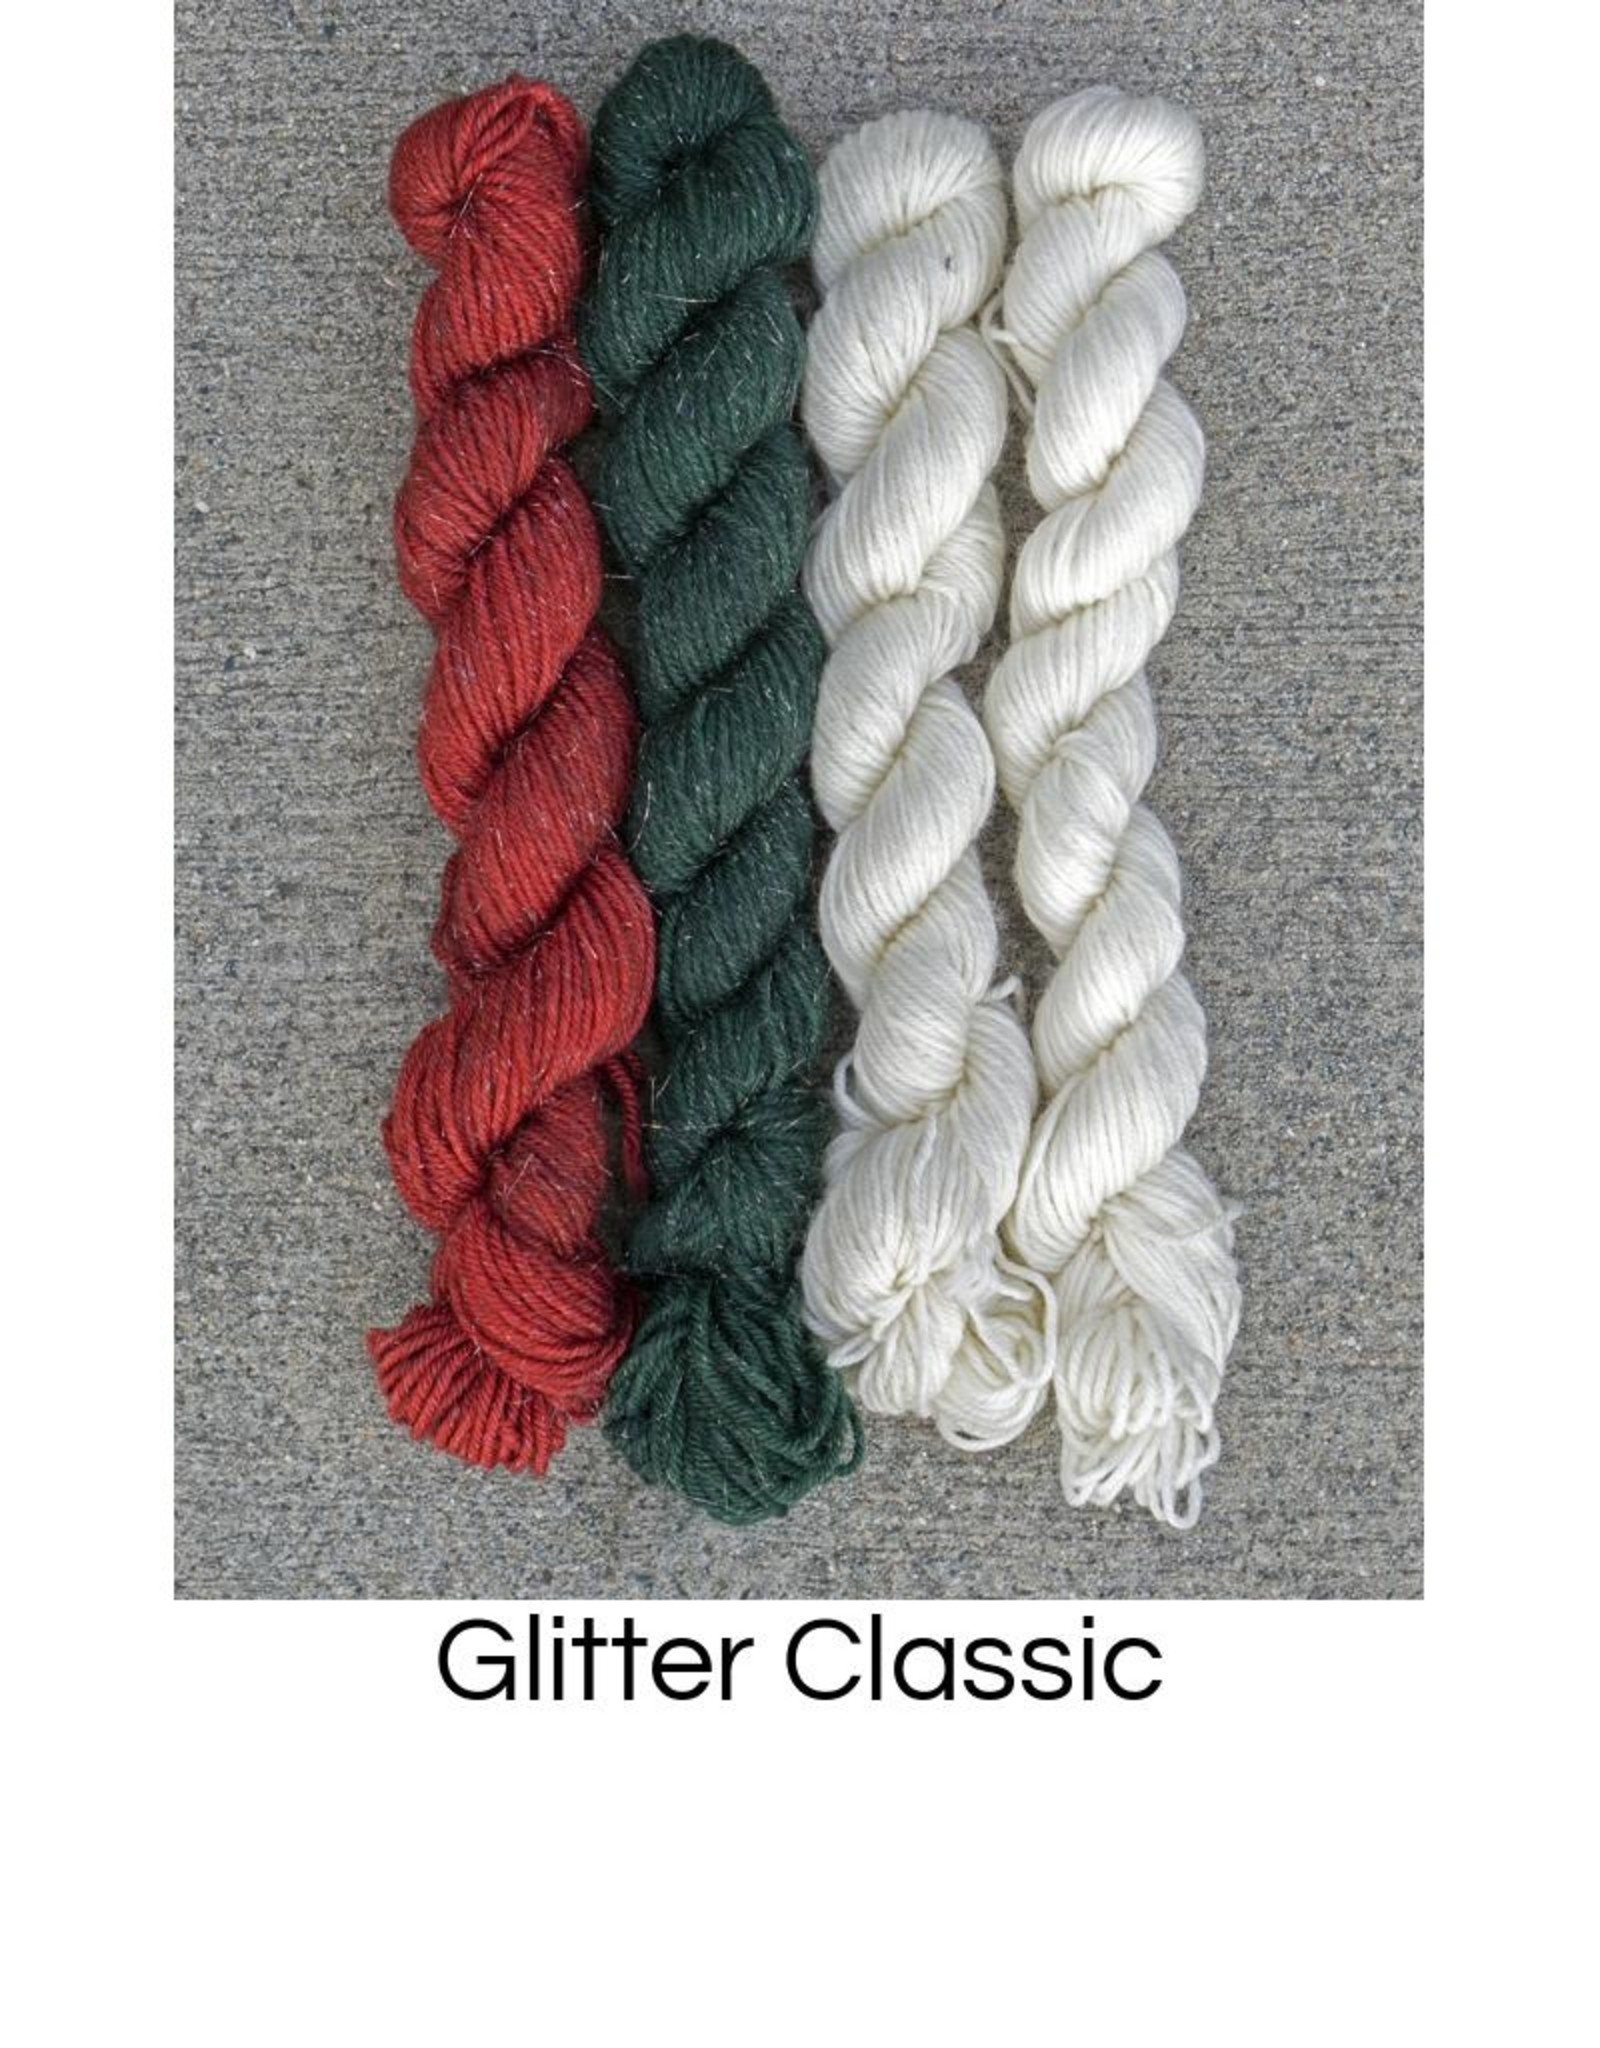 Yarnslayer Fibers Mini Stocking Kit